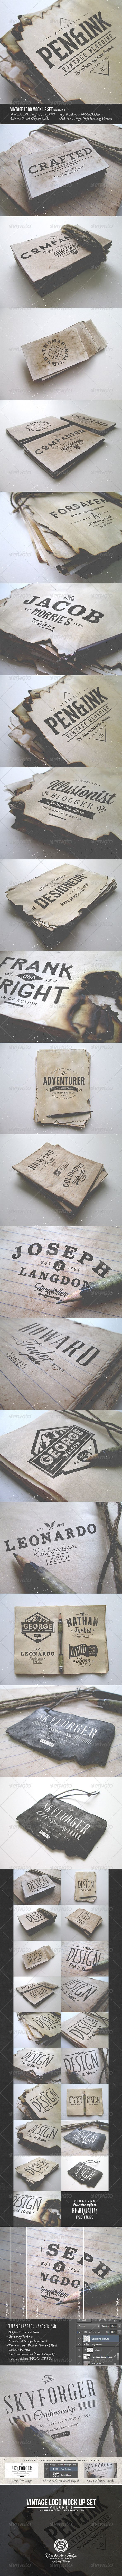 Vintage Logo Mock Up Set Volume 2  — PSD Template #grunge #weathered look #logo…                                                                                                                                                                                 More